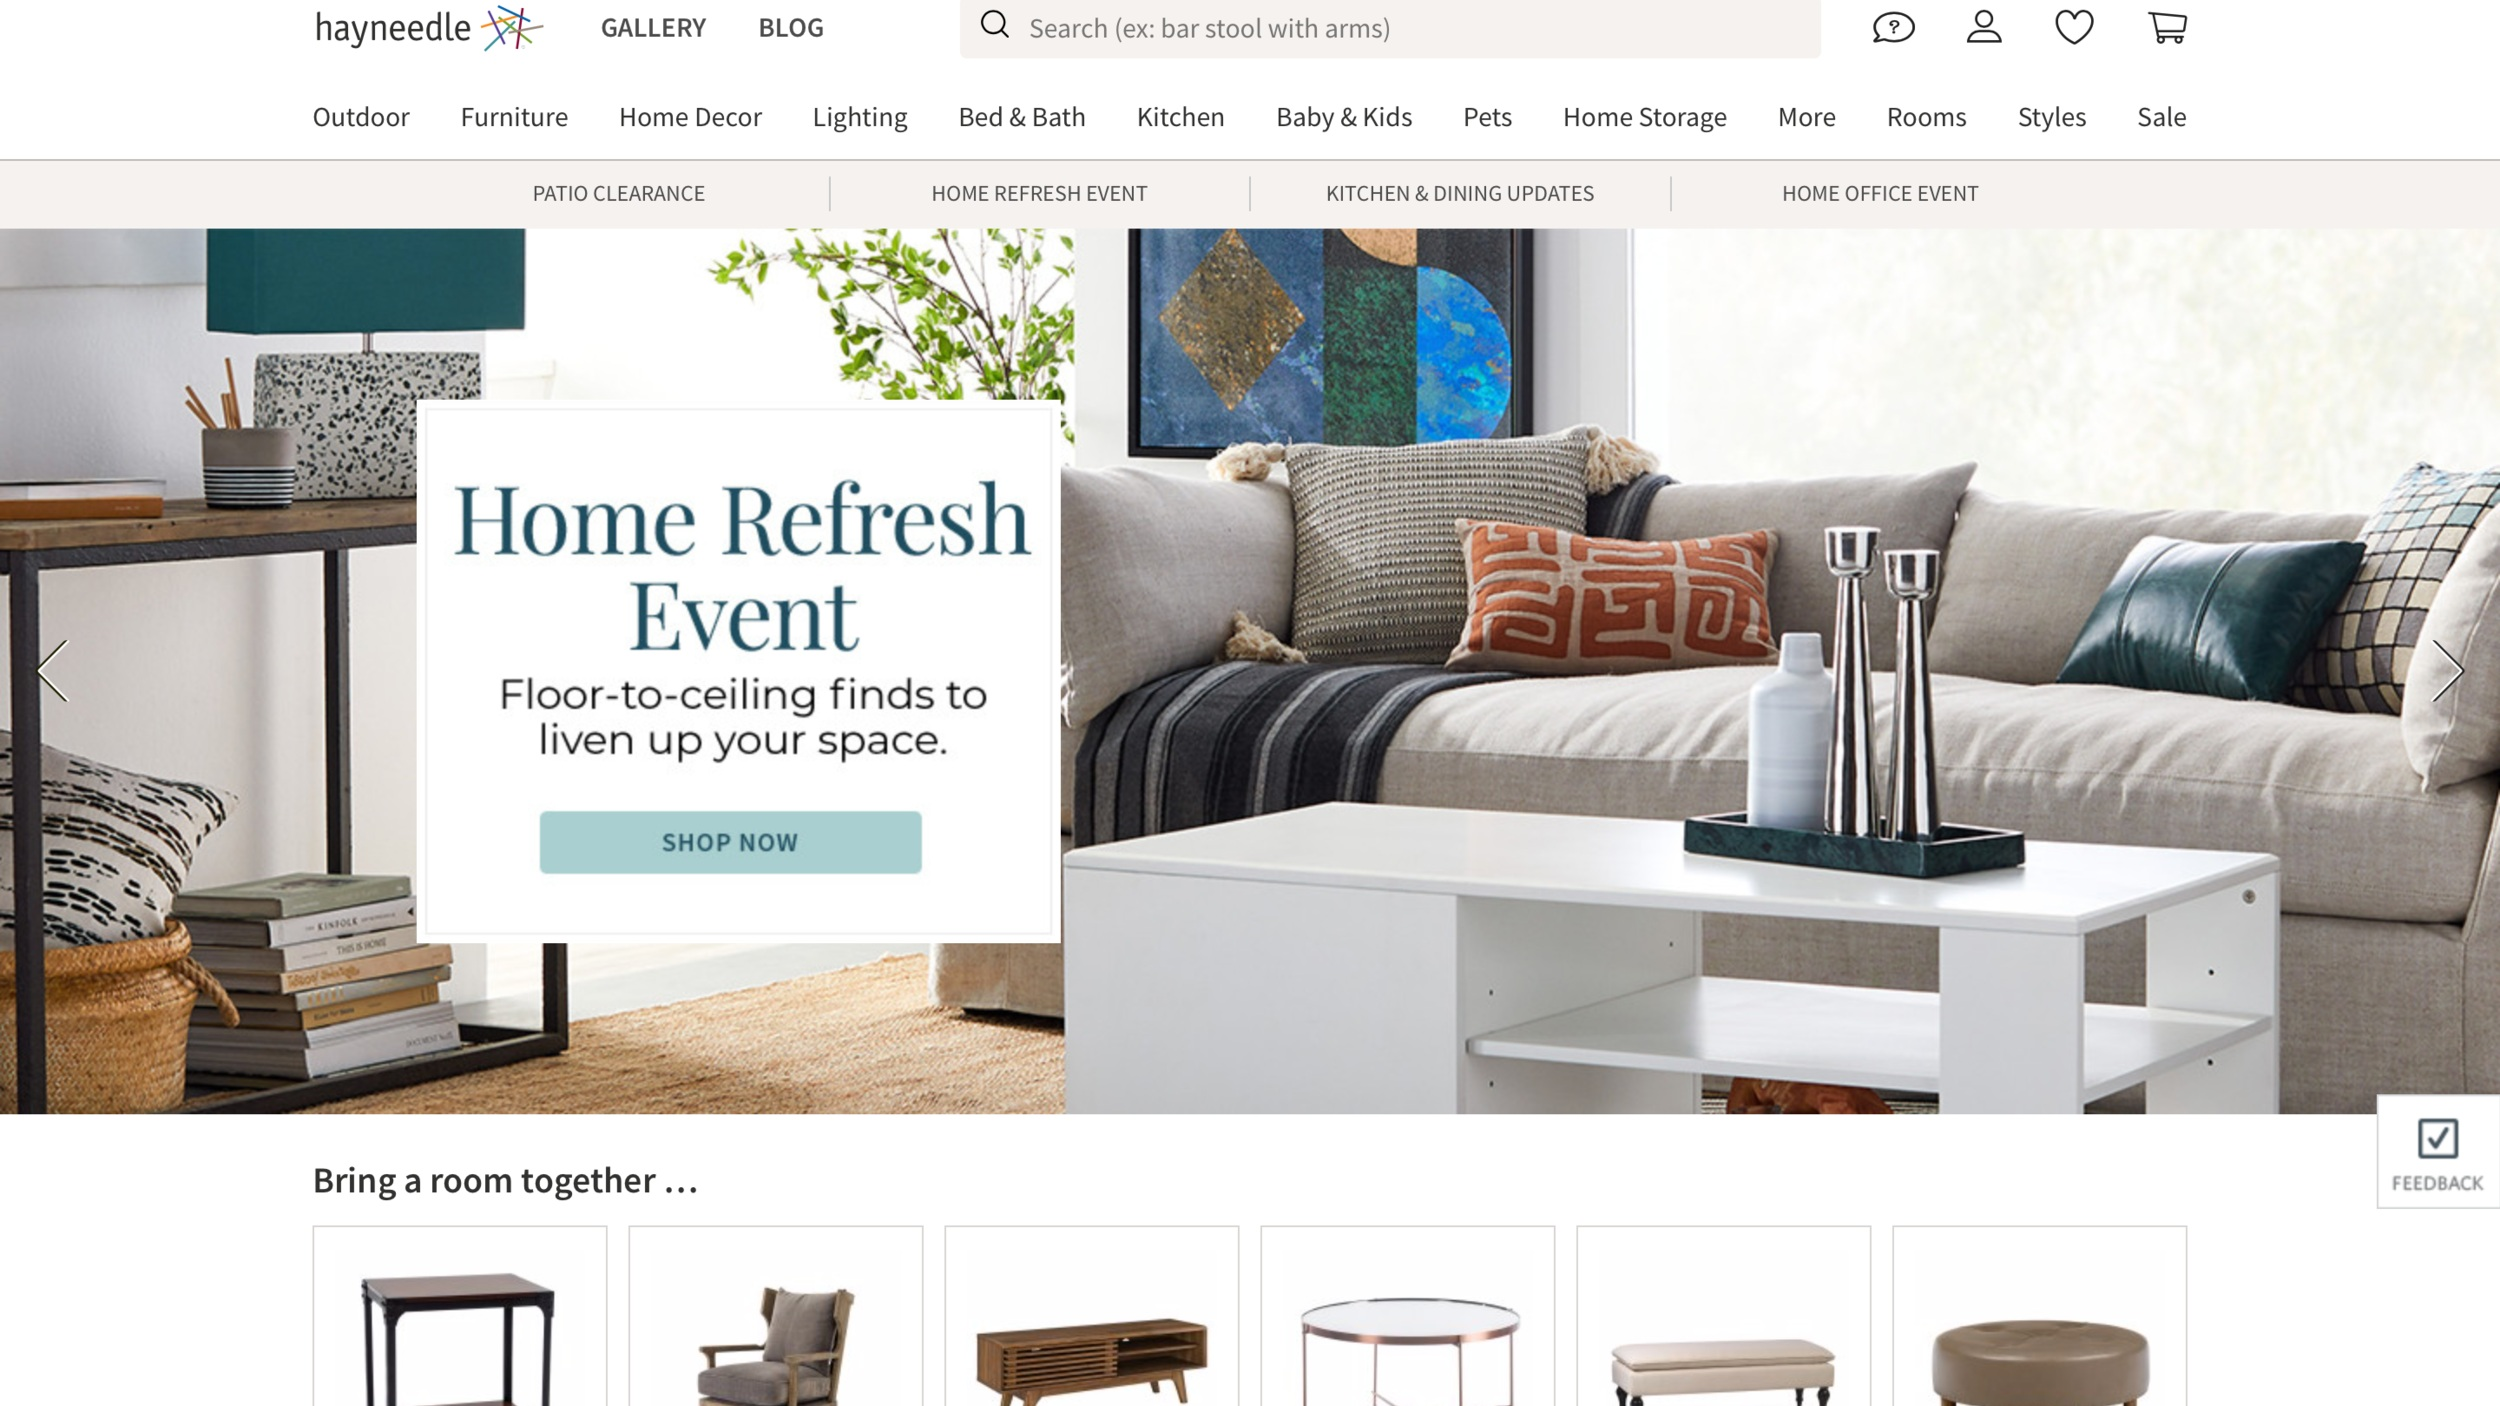 Best public relations agency for home decor and e-commerce industry. PR for Hayneedle.com  https://www.hayneedle.com